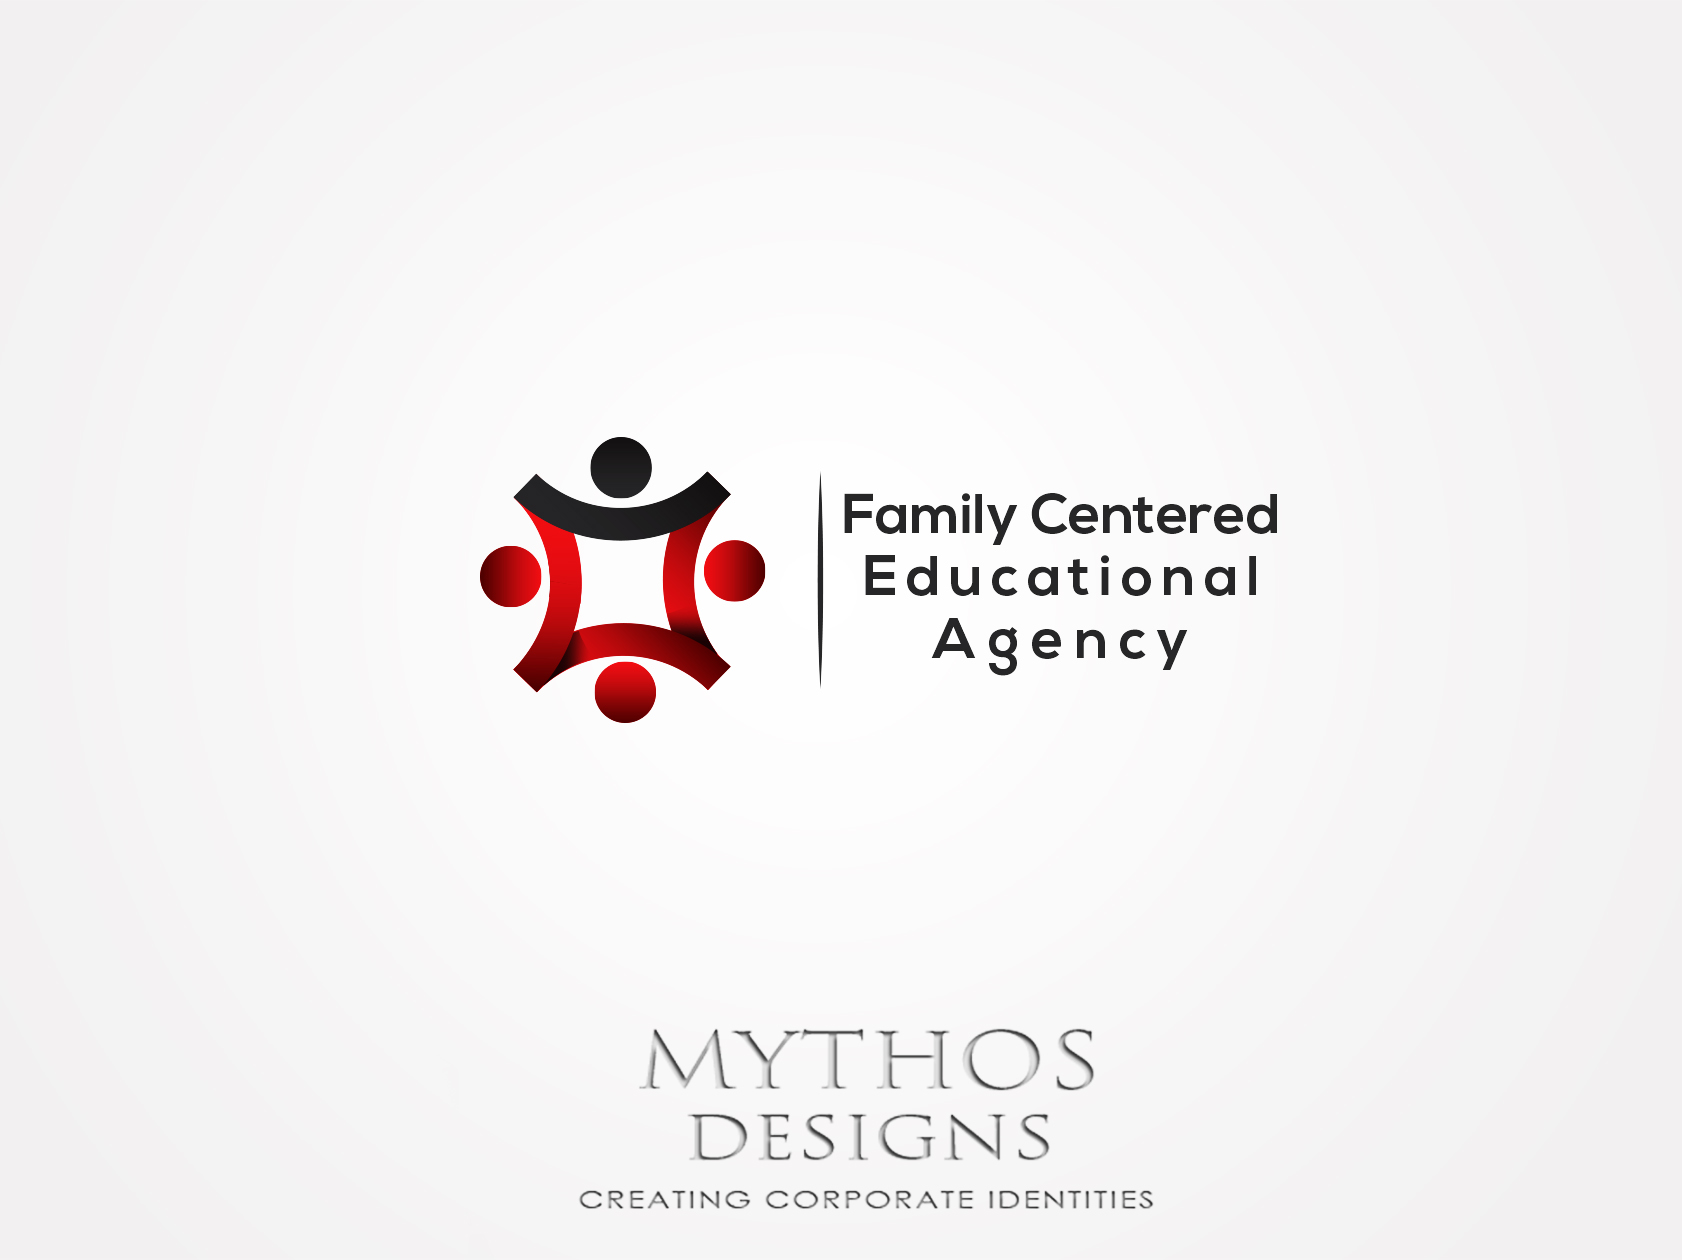 Logo Design by Mythos Designs - Entry No. 59 in the Logo Design Contest Captivating Logo Design for Family Centered Educational Agency.